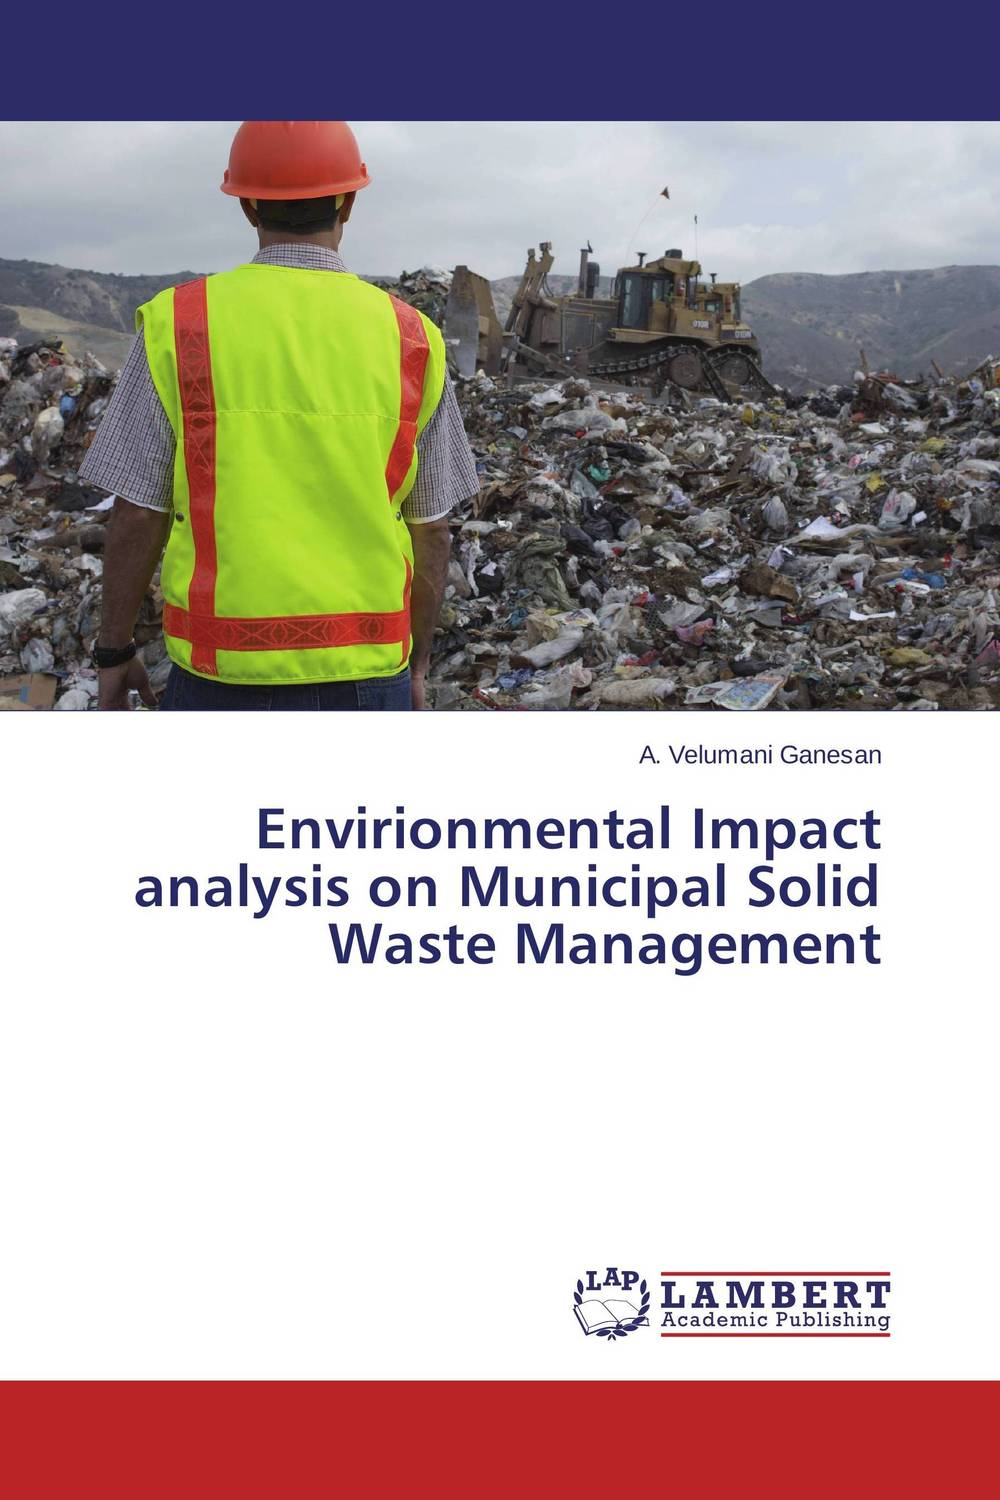 Envirionmental Impact analysis on Municipal Solid Waste Management